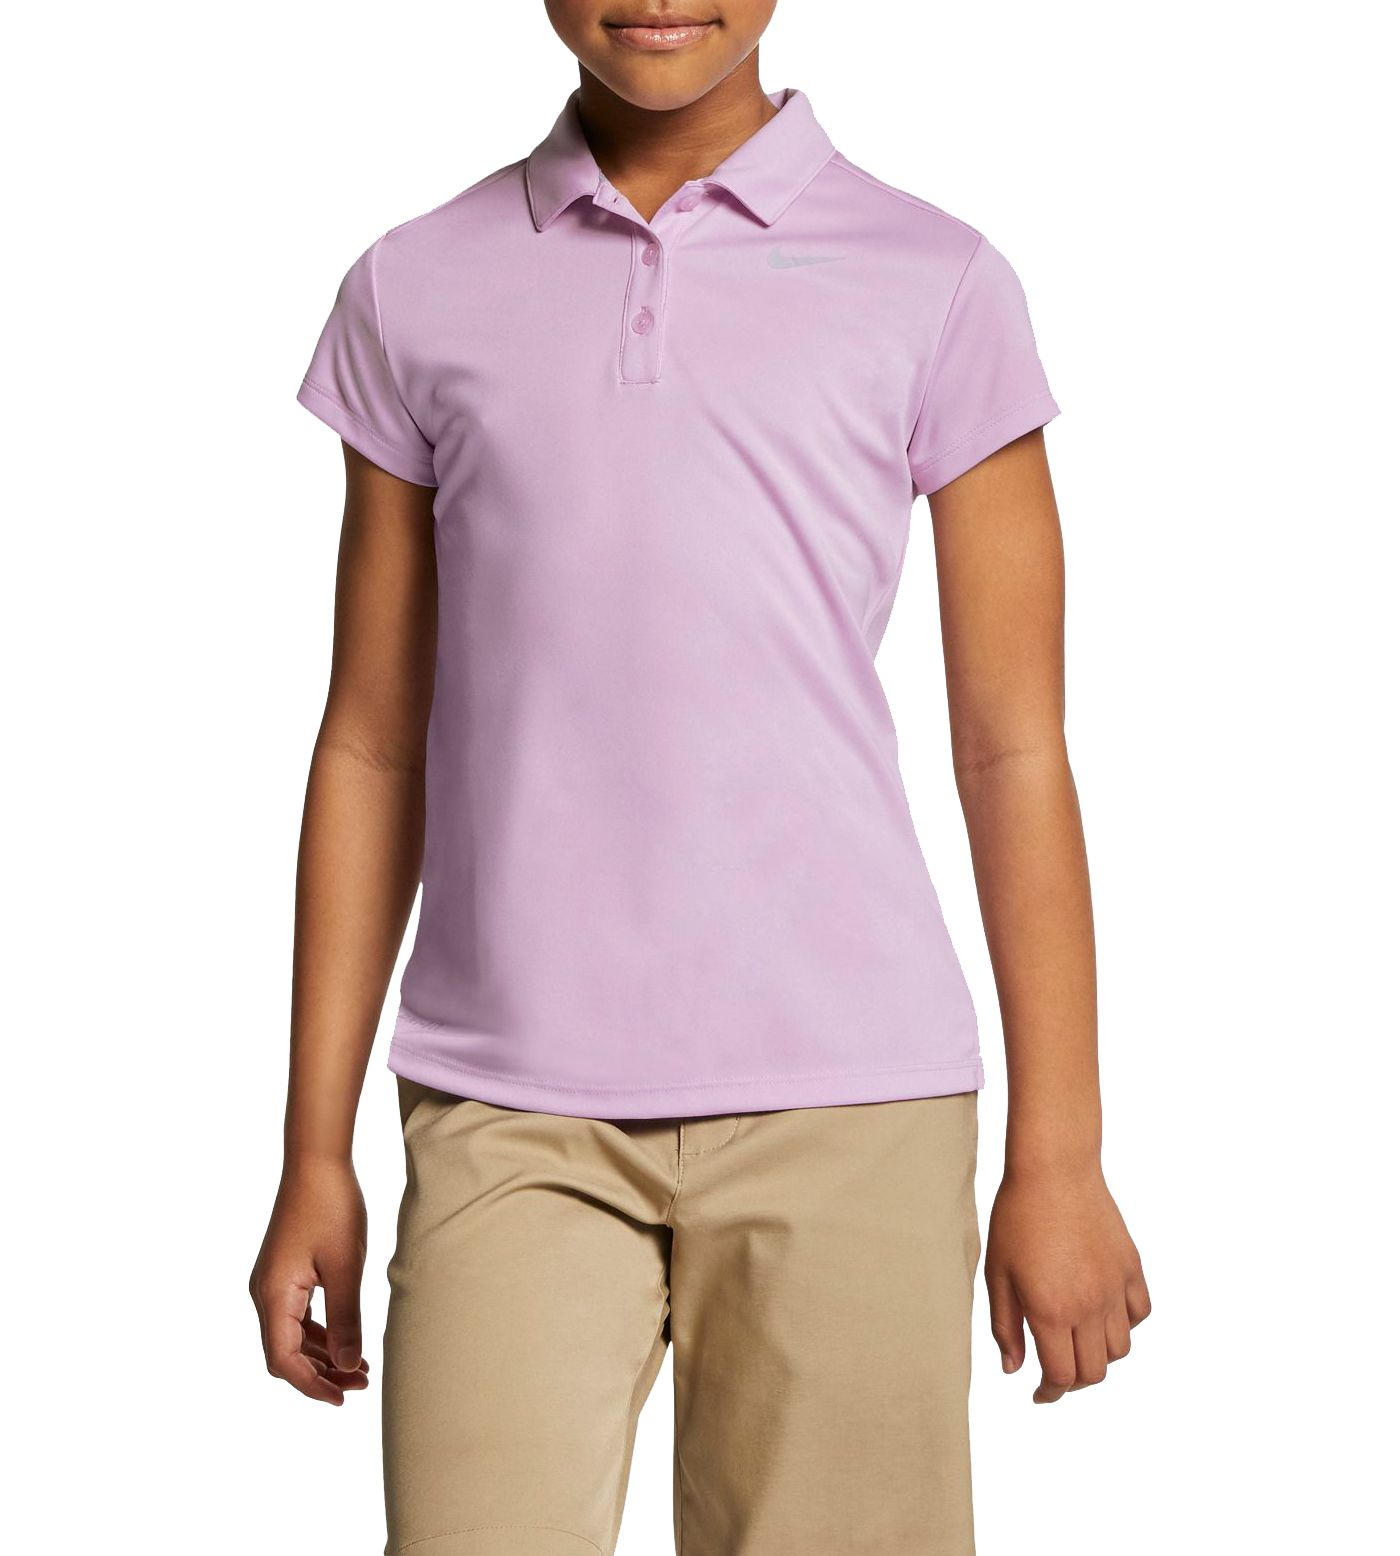 Nike Girls' Dry Victory Golf Polo